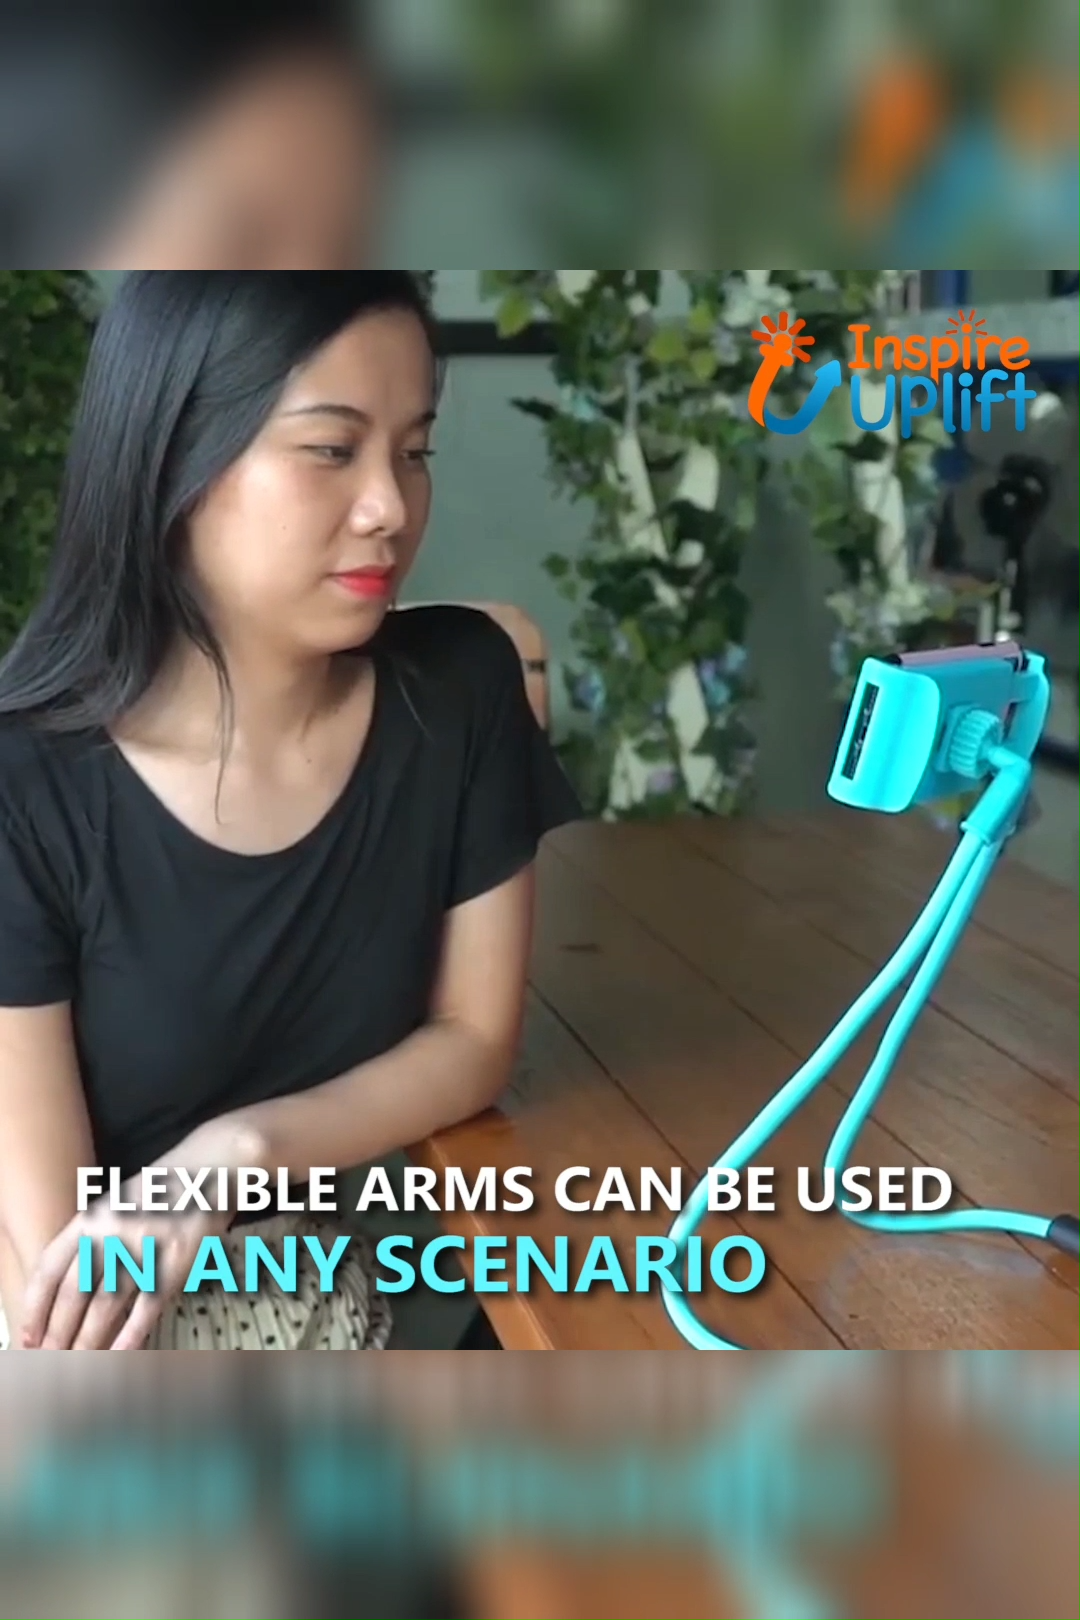 Flexible Phone Holder 😍  The Flexible Phone Holder is the perfect device for those who love to relax on the couch or in bed while watching their favorite shows. It also comes in handy for those who need a solution to taking the perfect selfies. Compatible with most modern phones and built with the highest quality materials, the Flexible Phone Holder is soon to become your new best friend!  Currently 50% OFF with FREE Shipping!